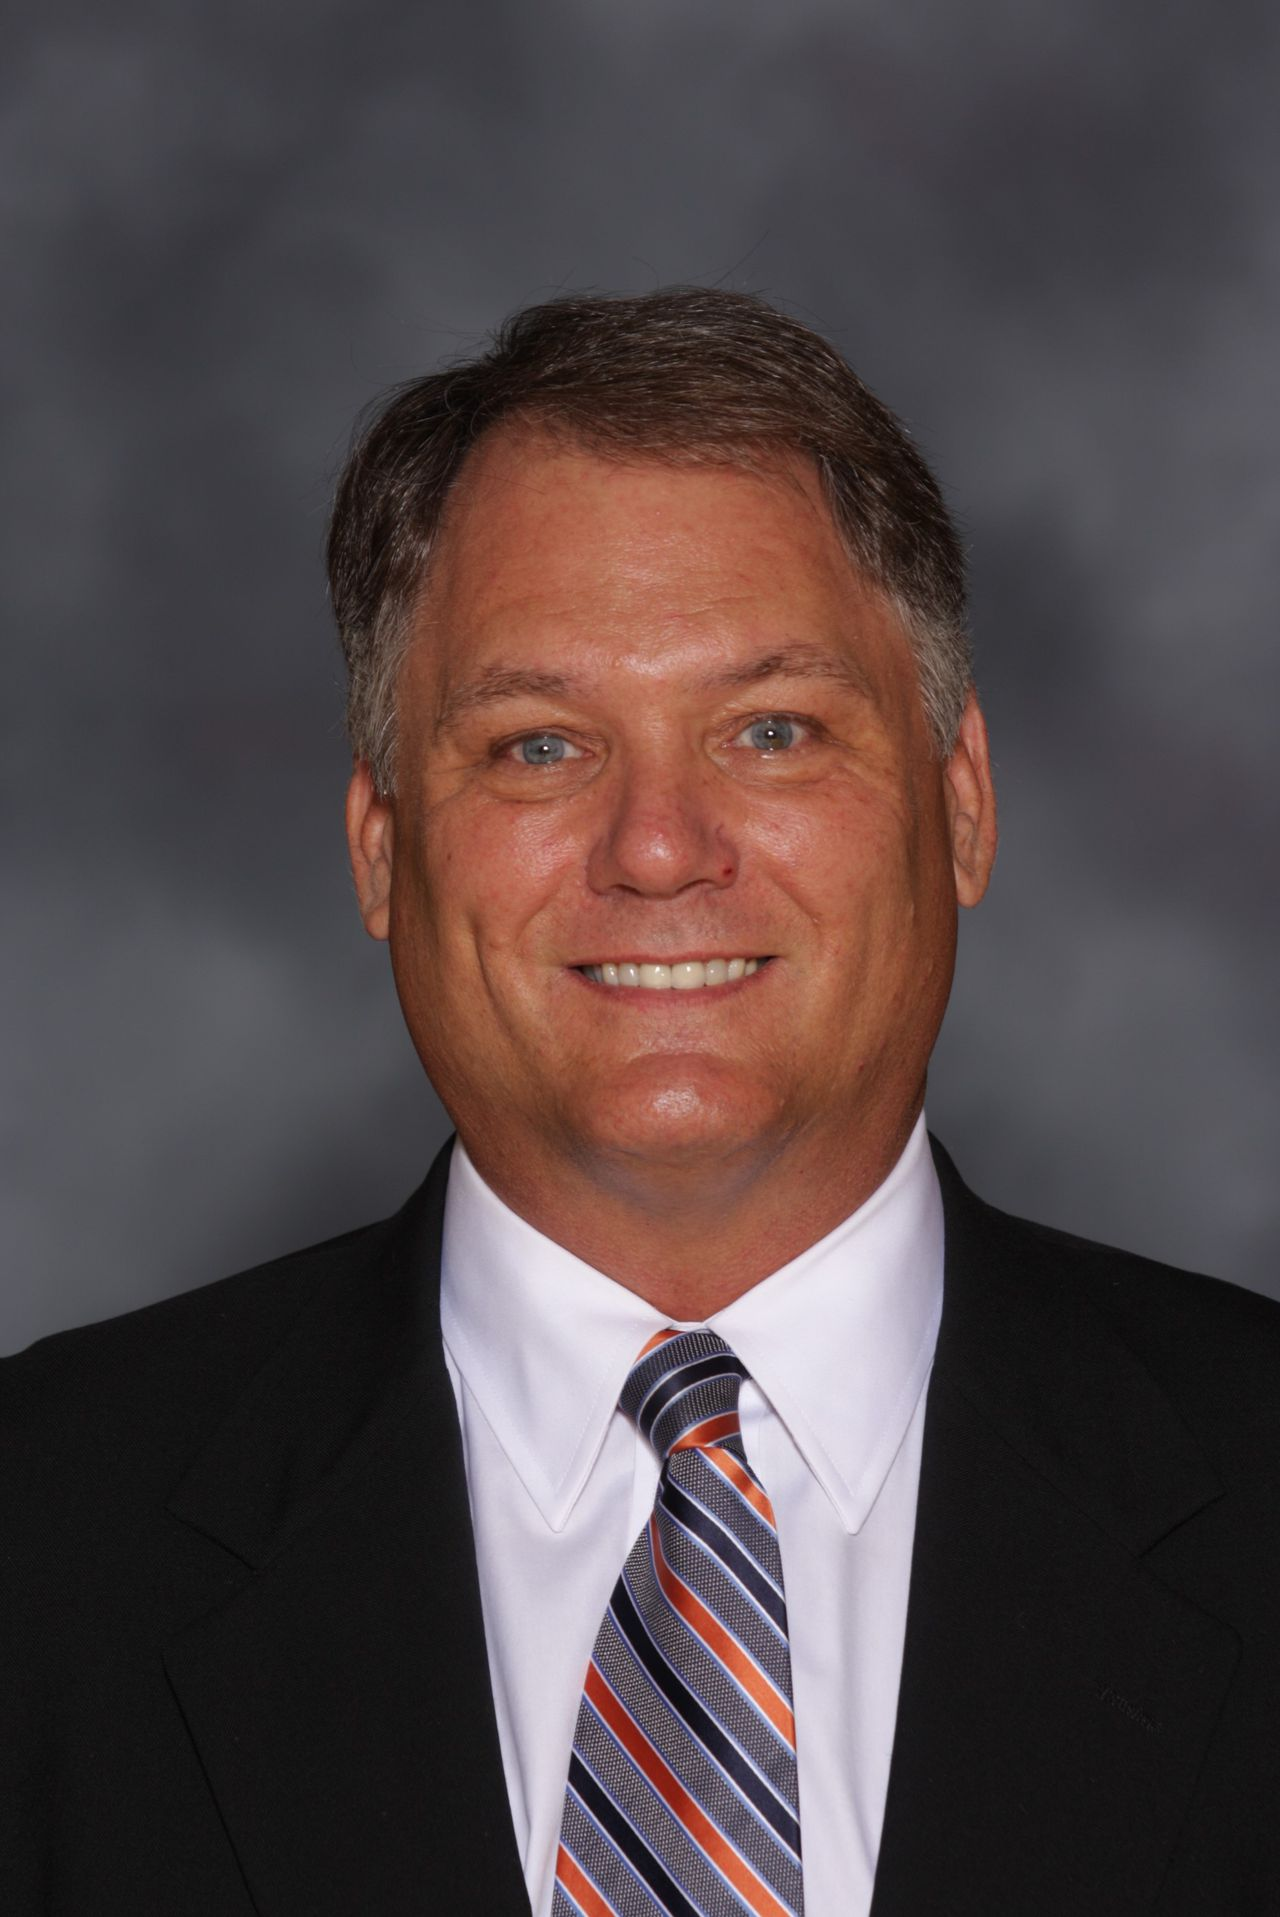 North Olmsted City Schools Superintendent set to retire at end of school year